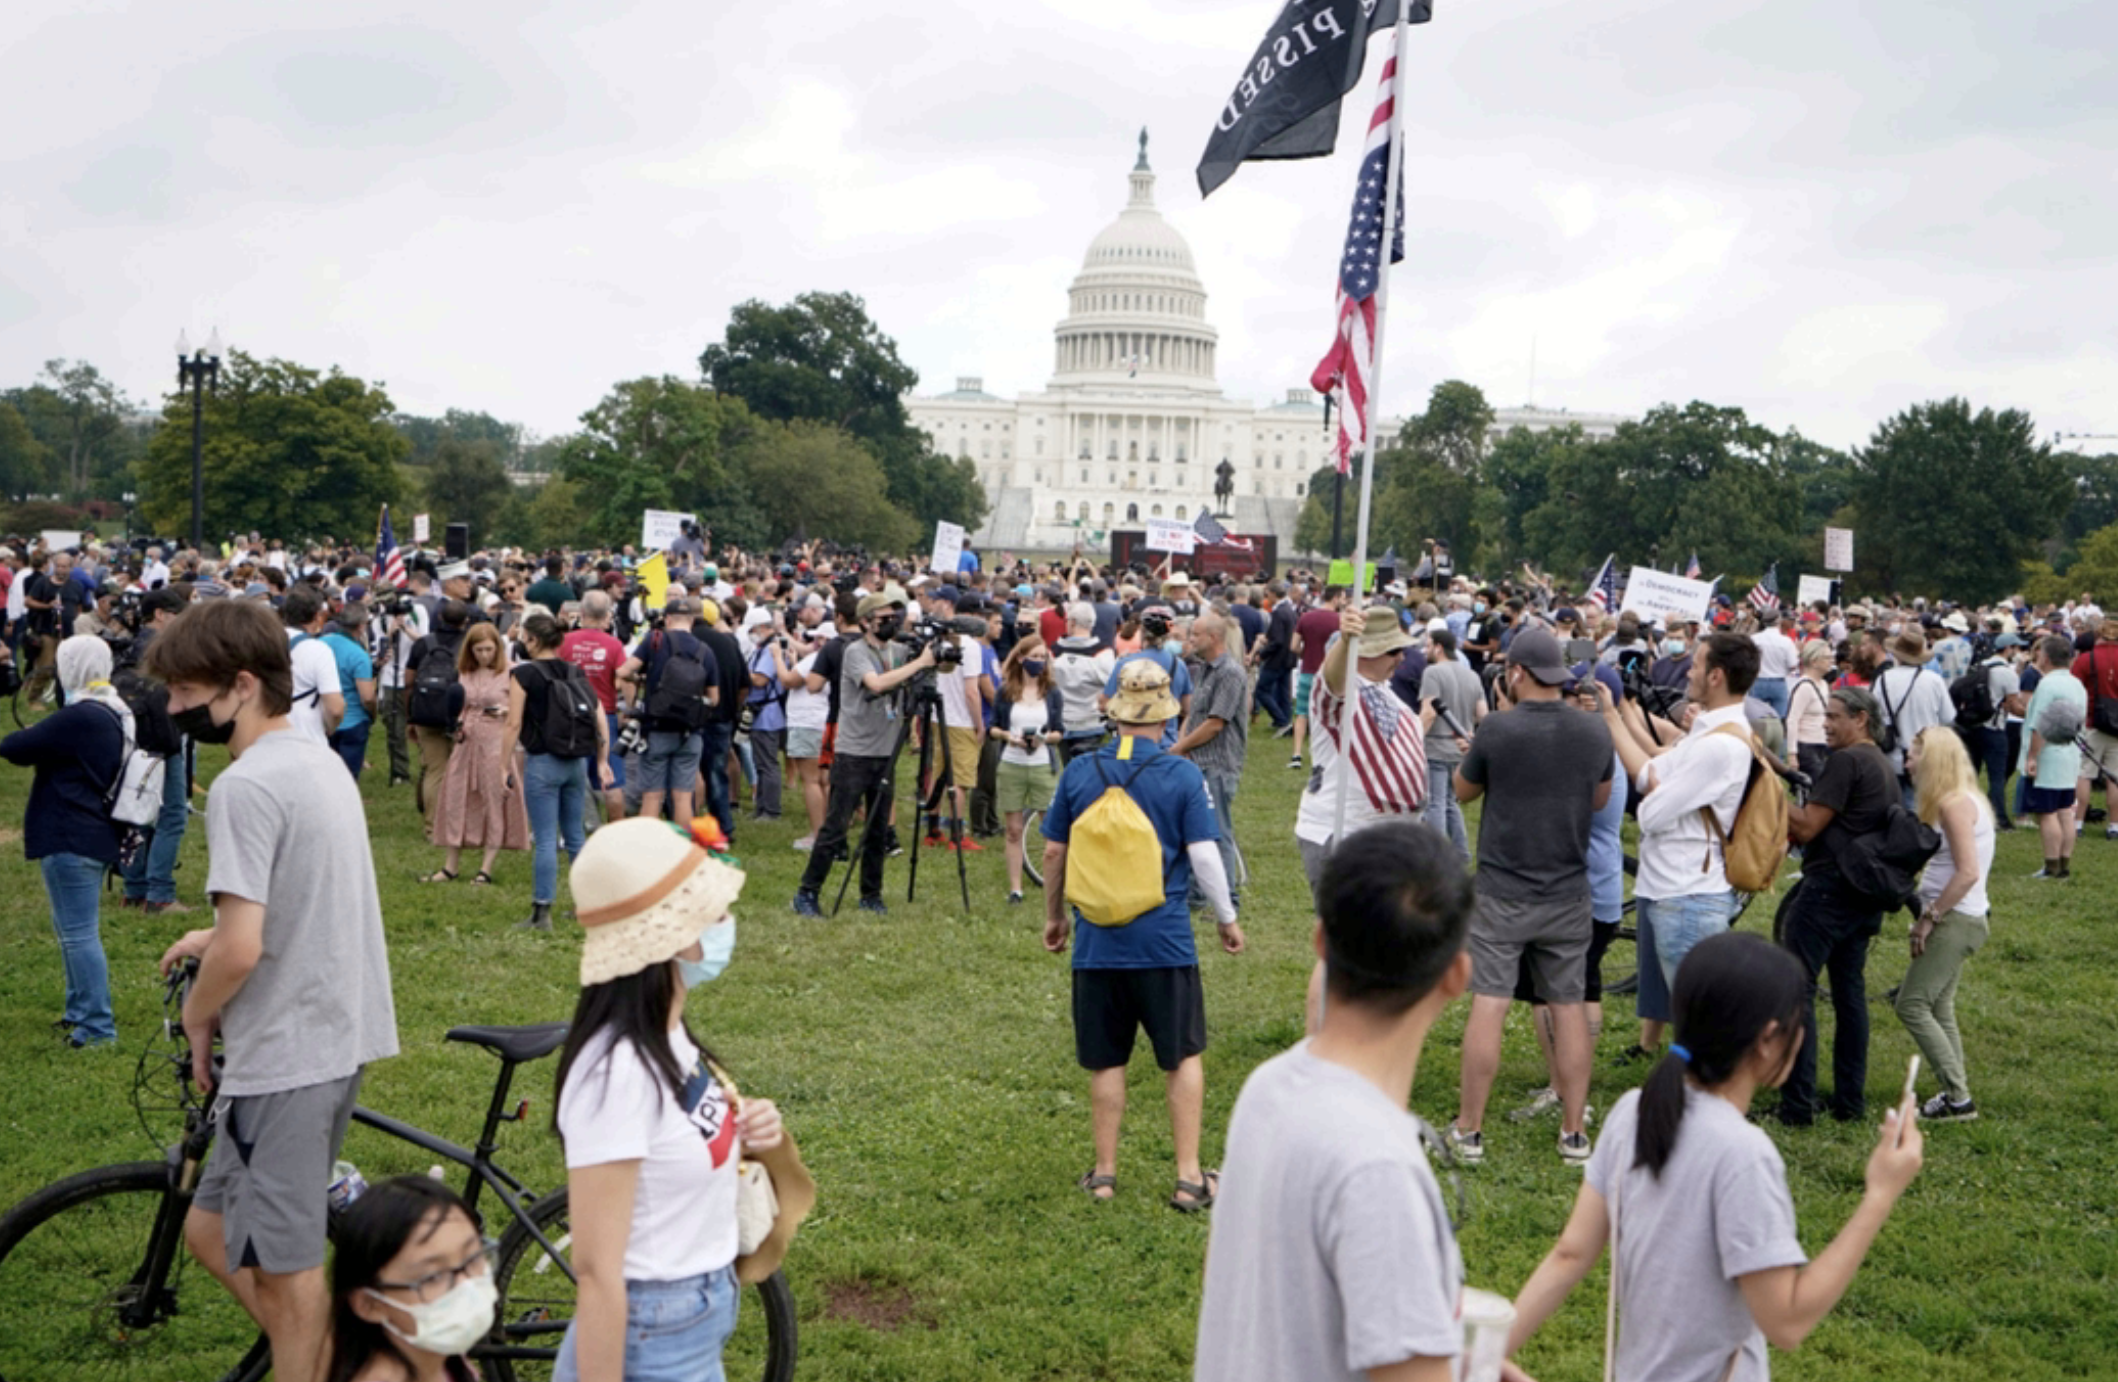 Amid high security, small pro-Trump crowd rallies at US Capitol - News